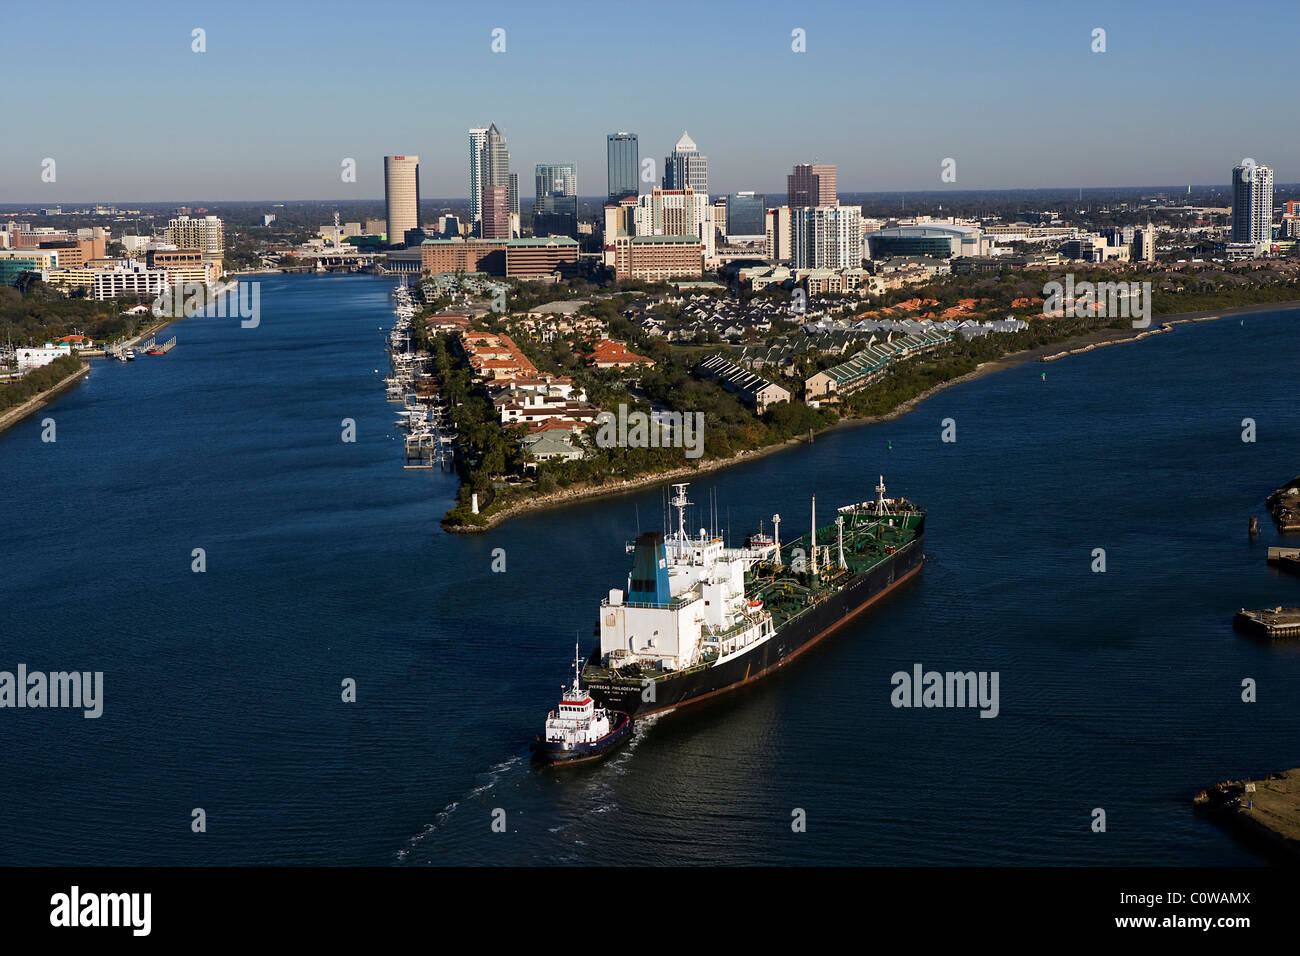 aerial view above tug boat pushing oil tanker Tampa bay Florida - Stock Image